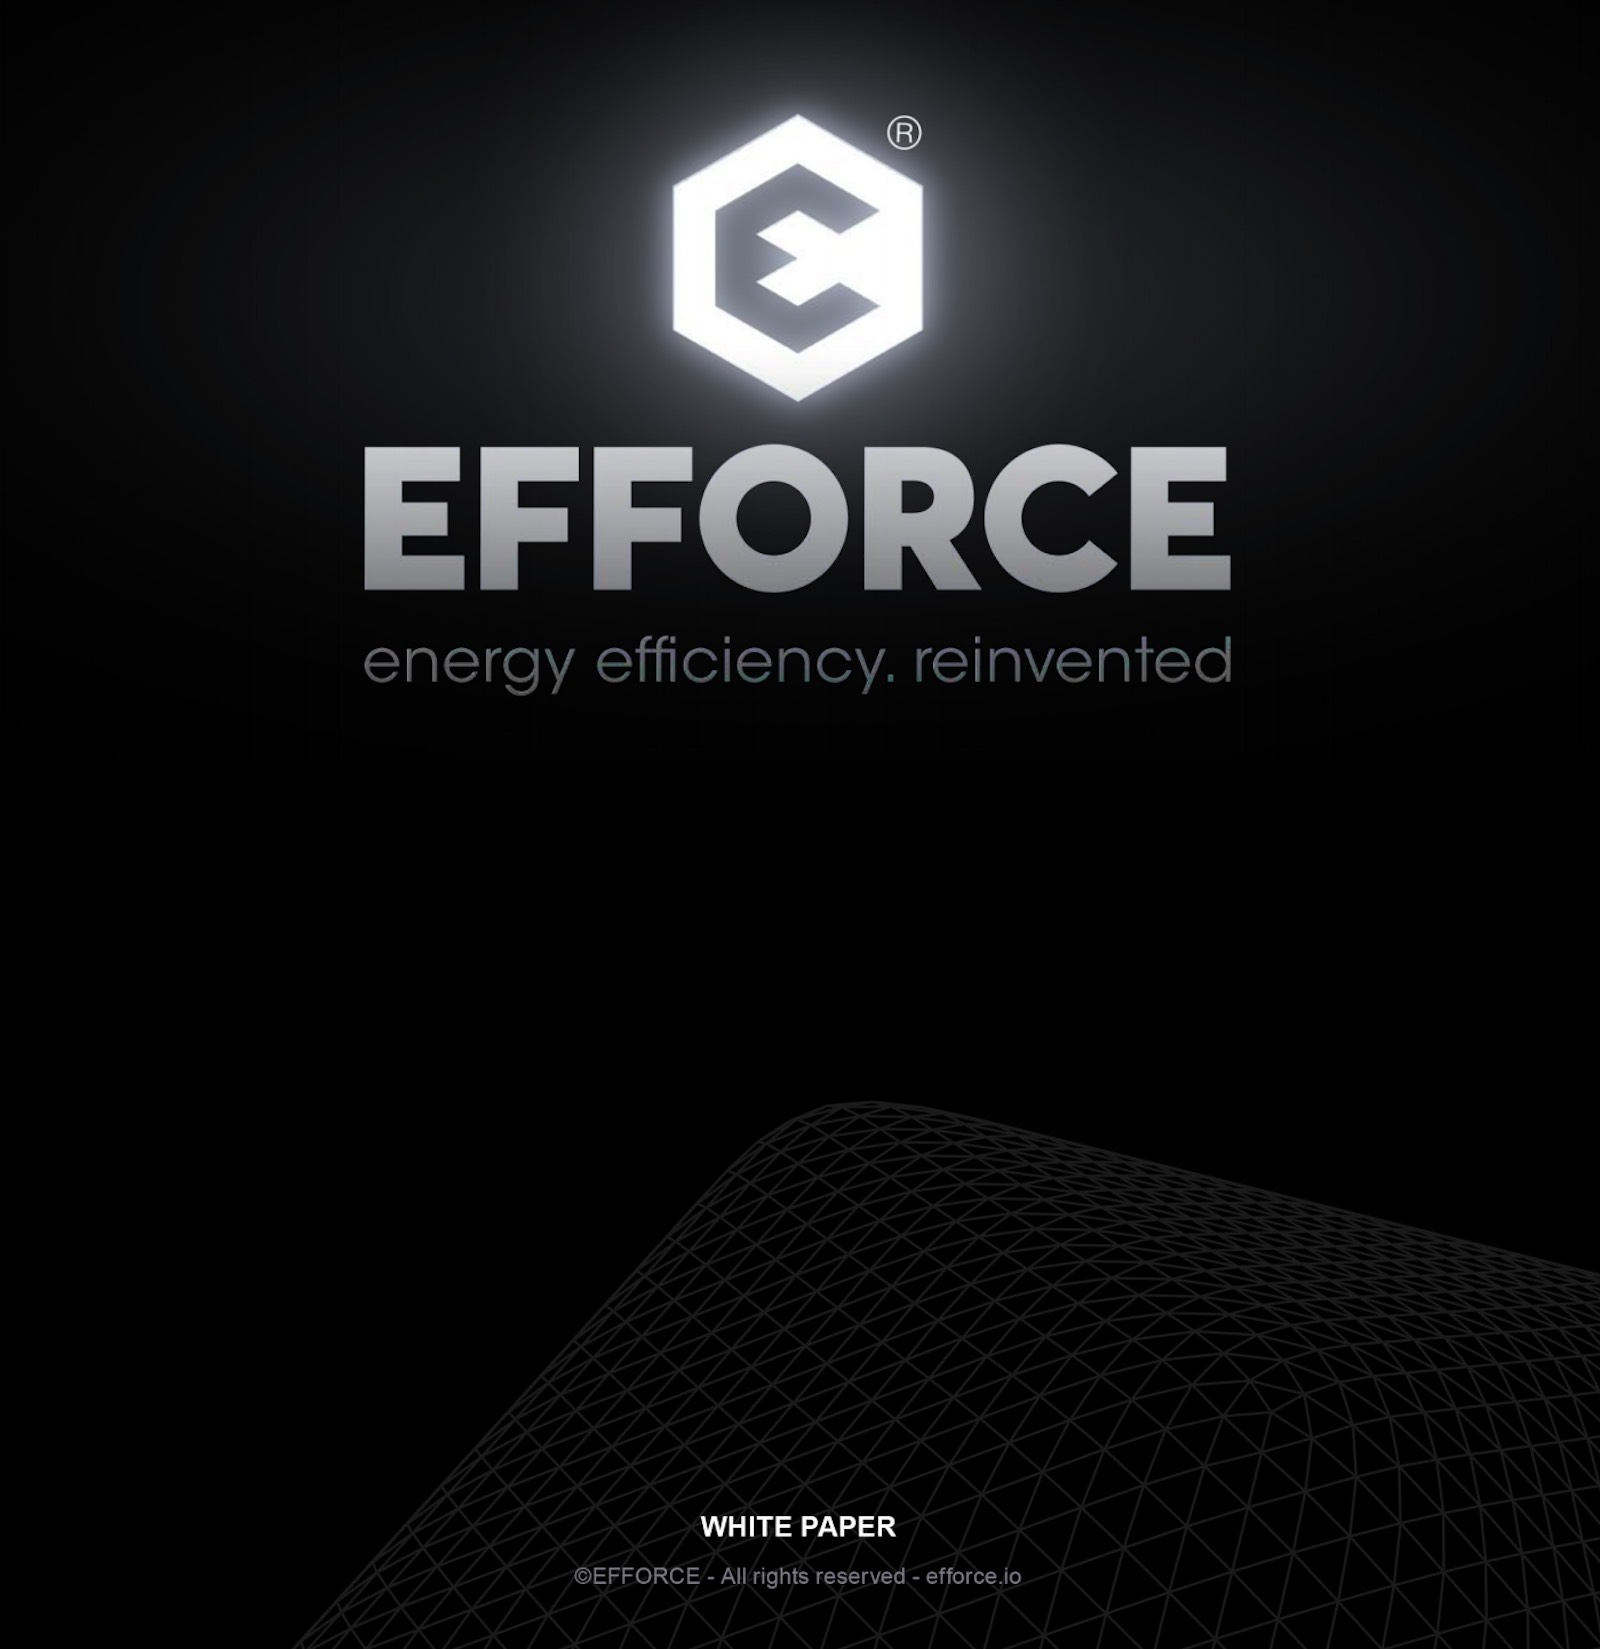 efforce whitepaper